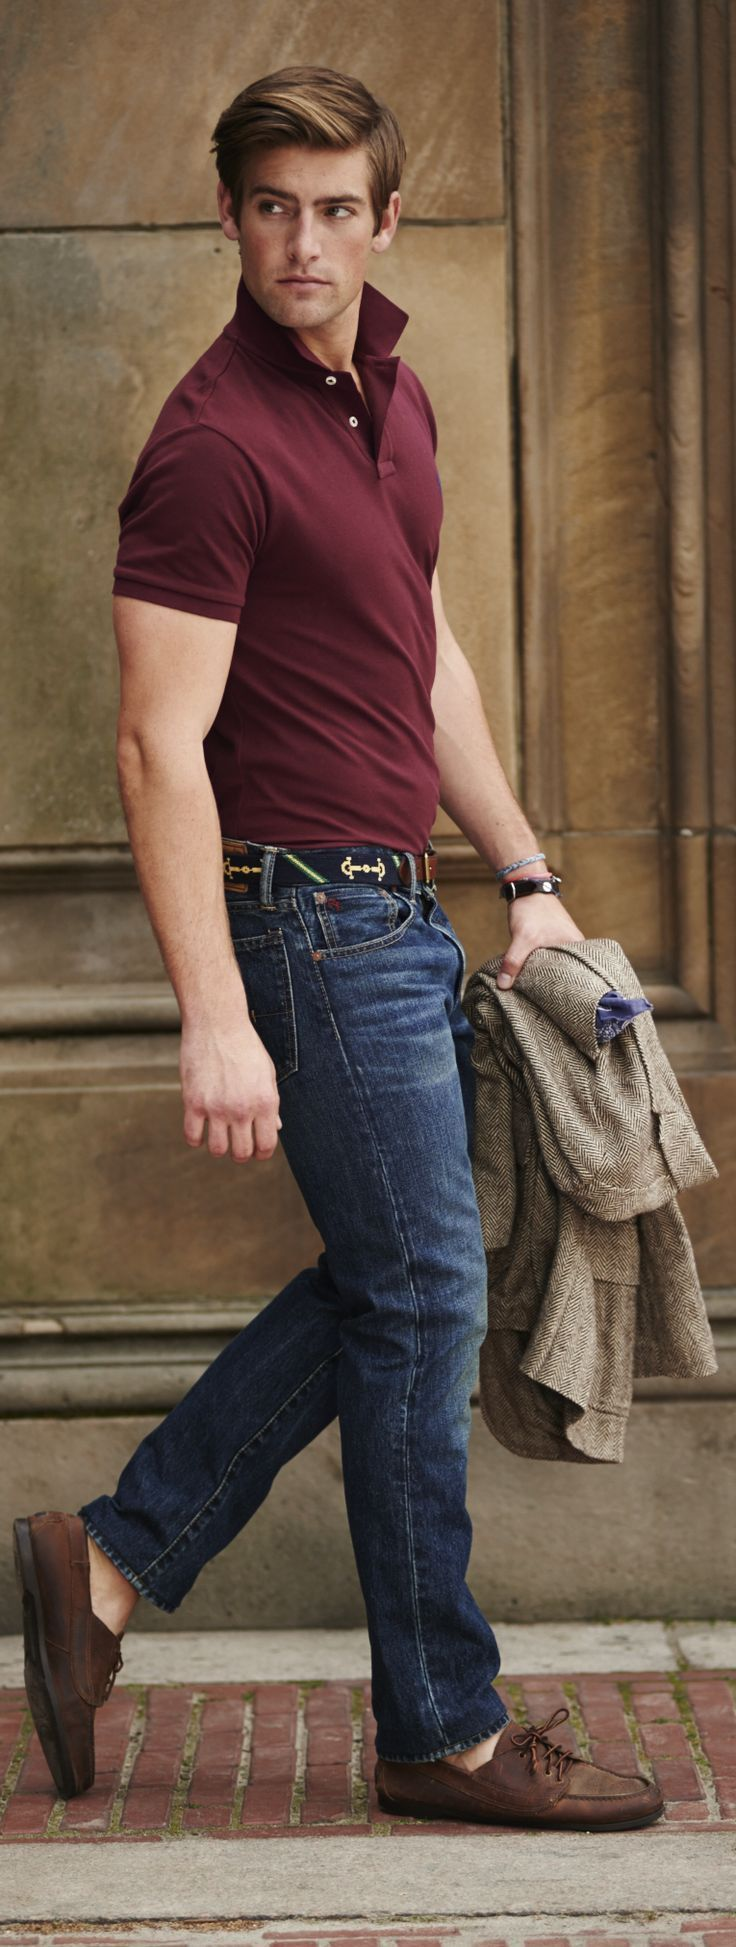 Get 6 amazing ways to style your polo now.